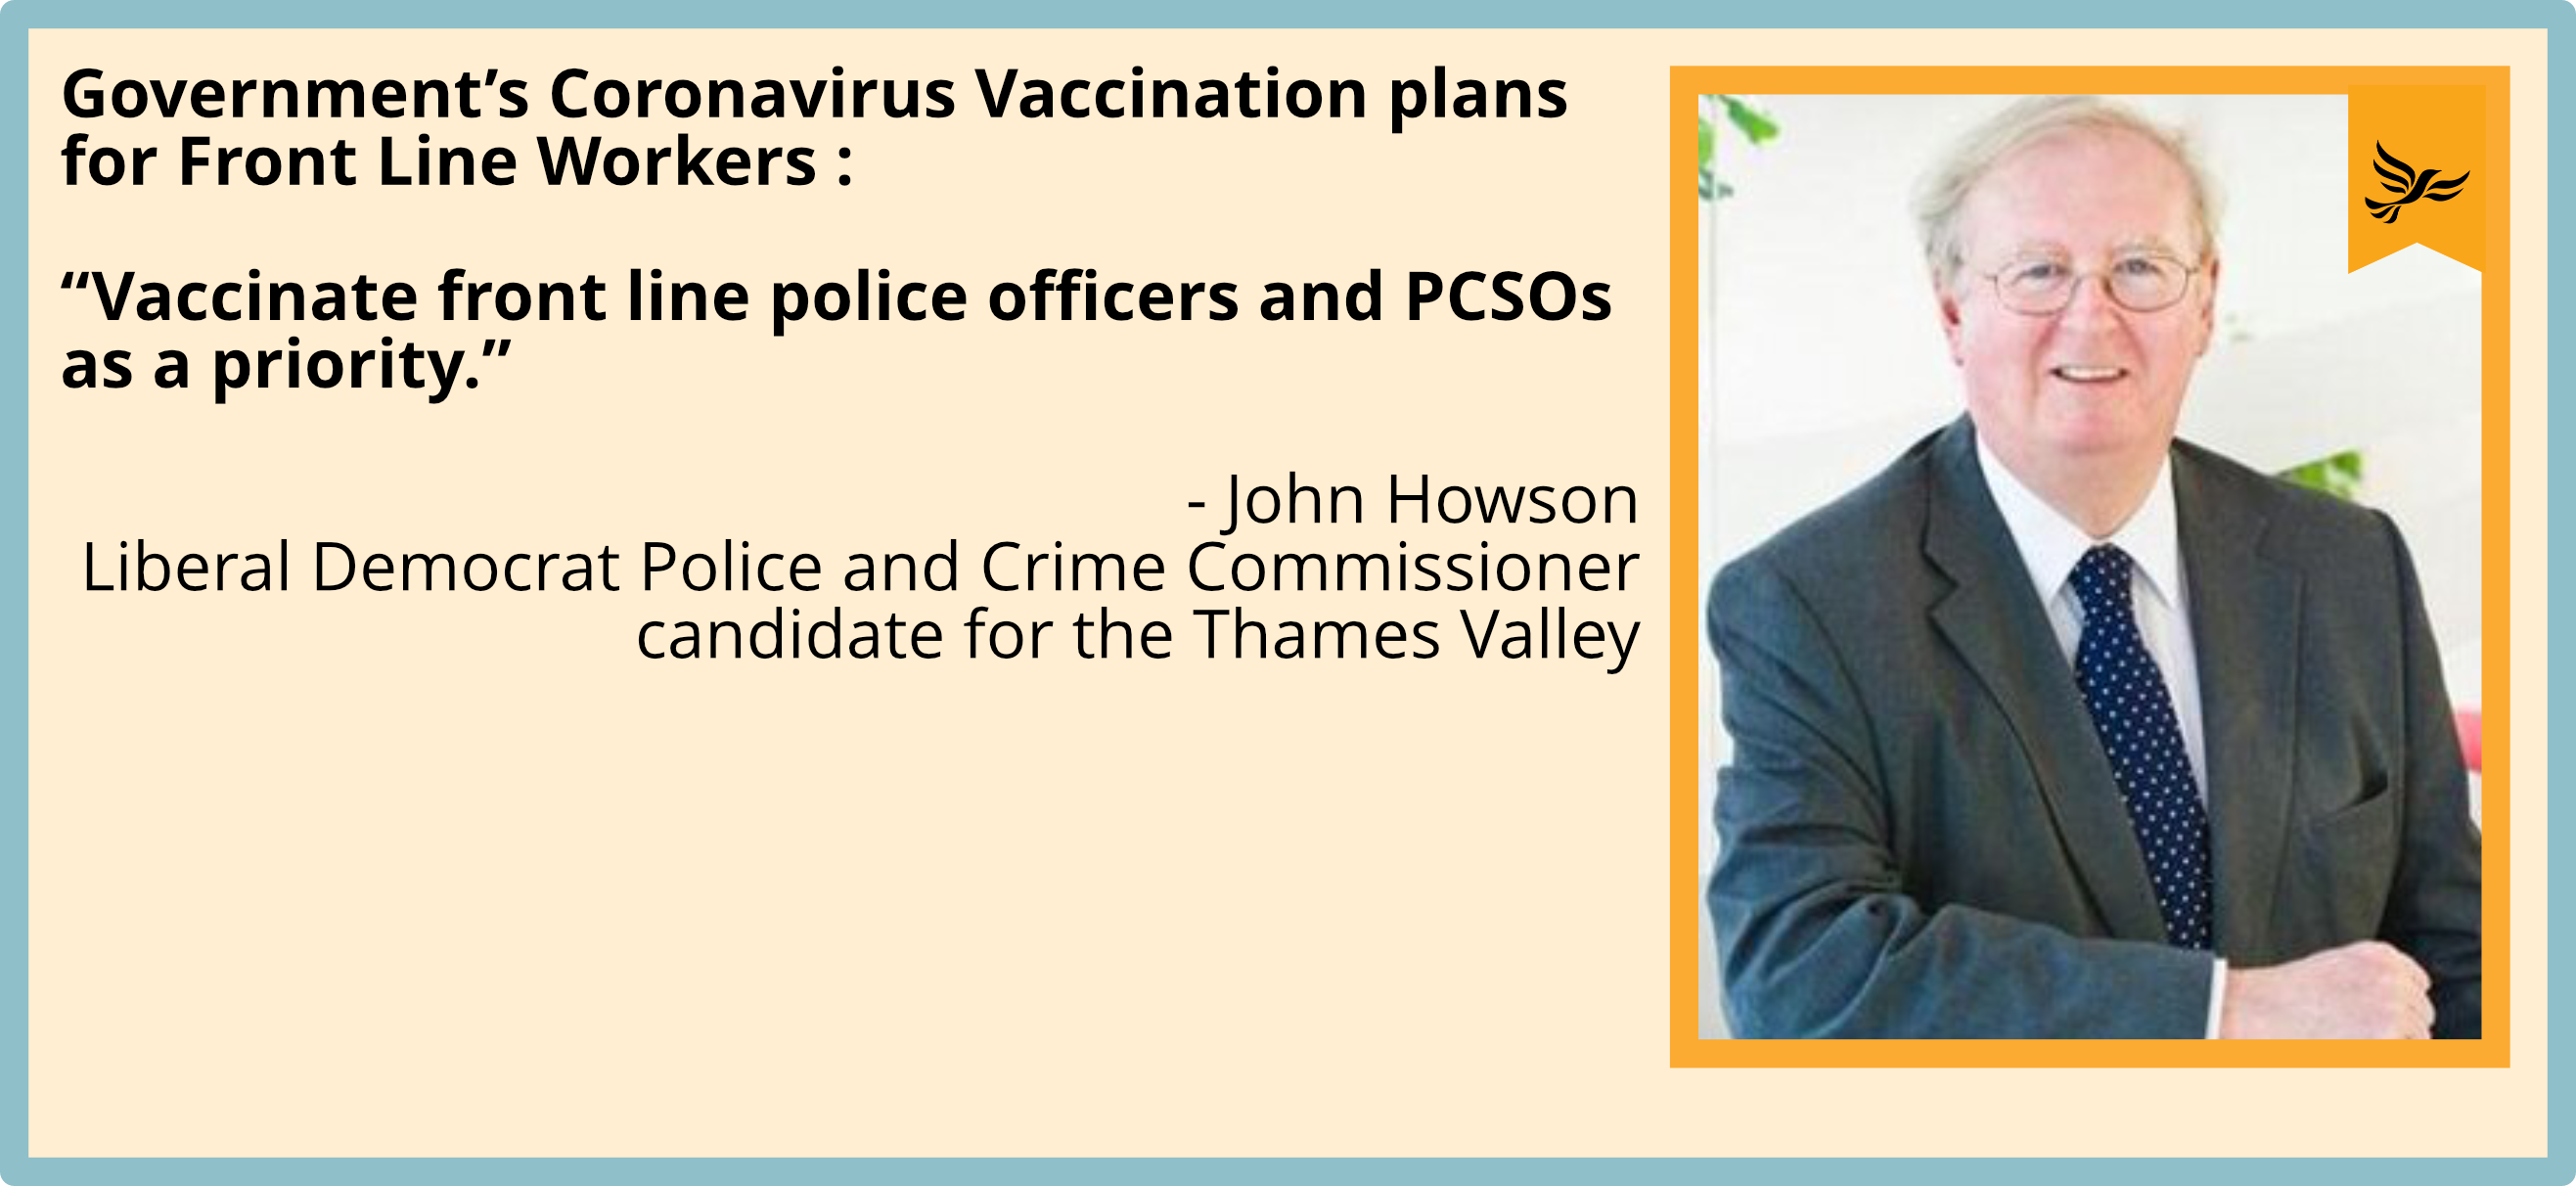 Vaccinate front line police officers and PCSOs as a priority